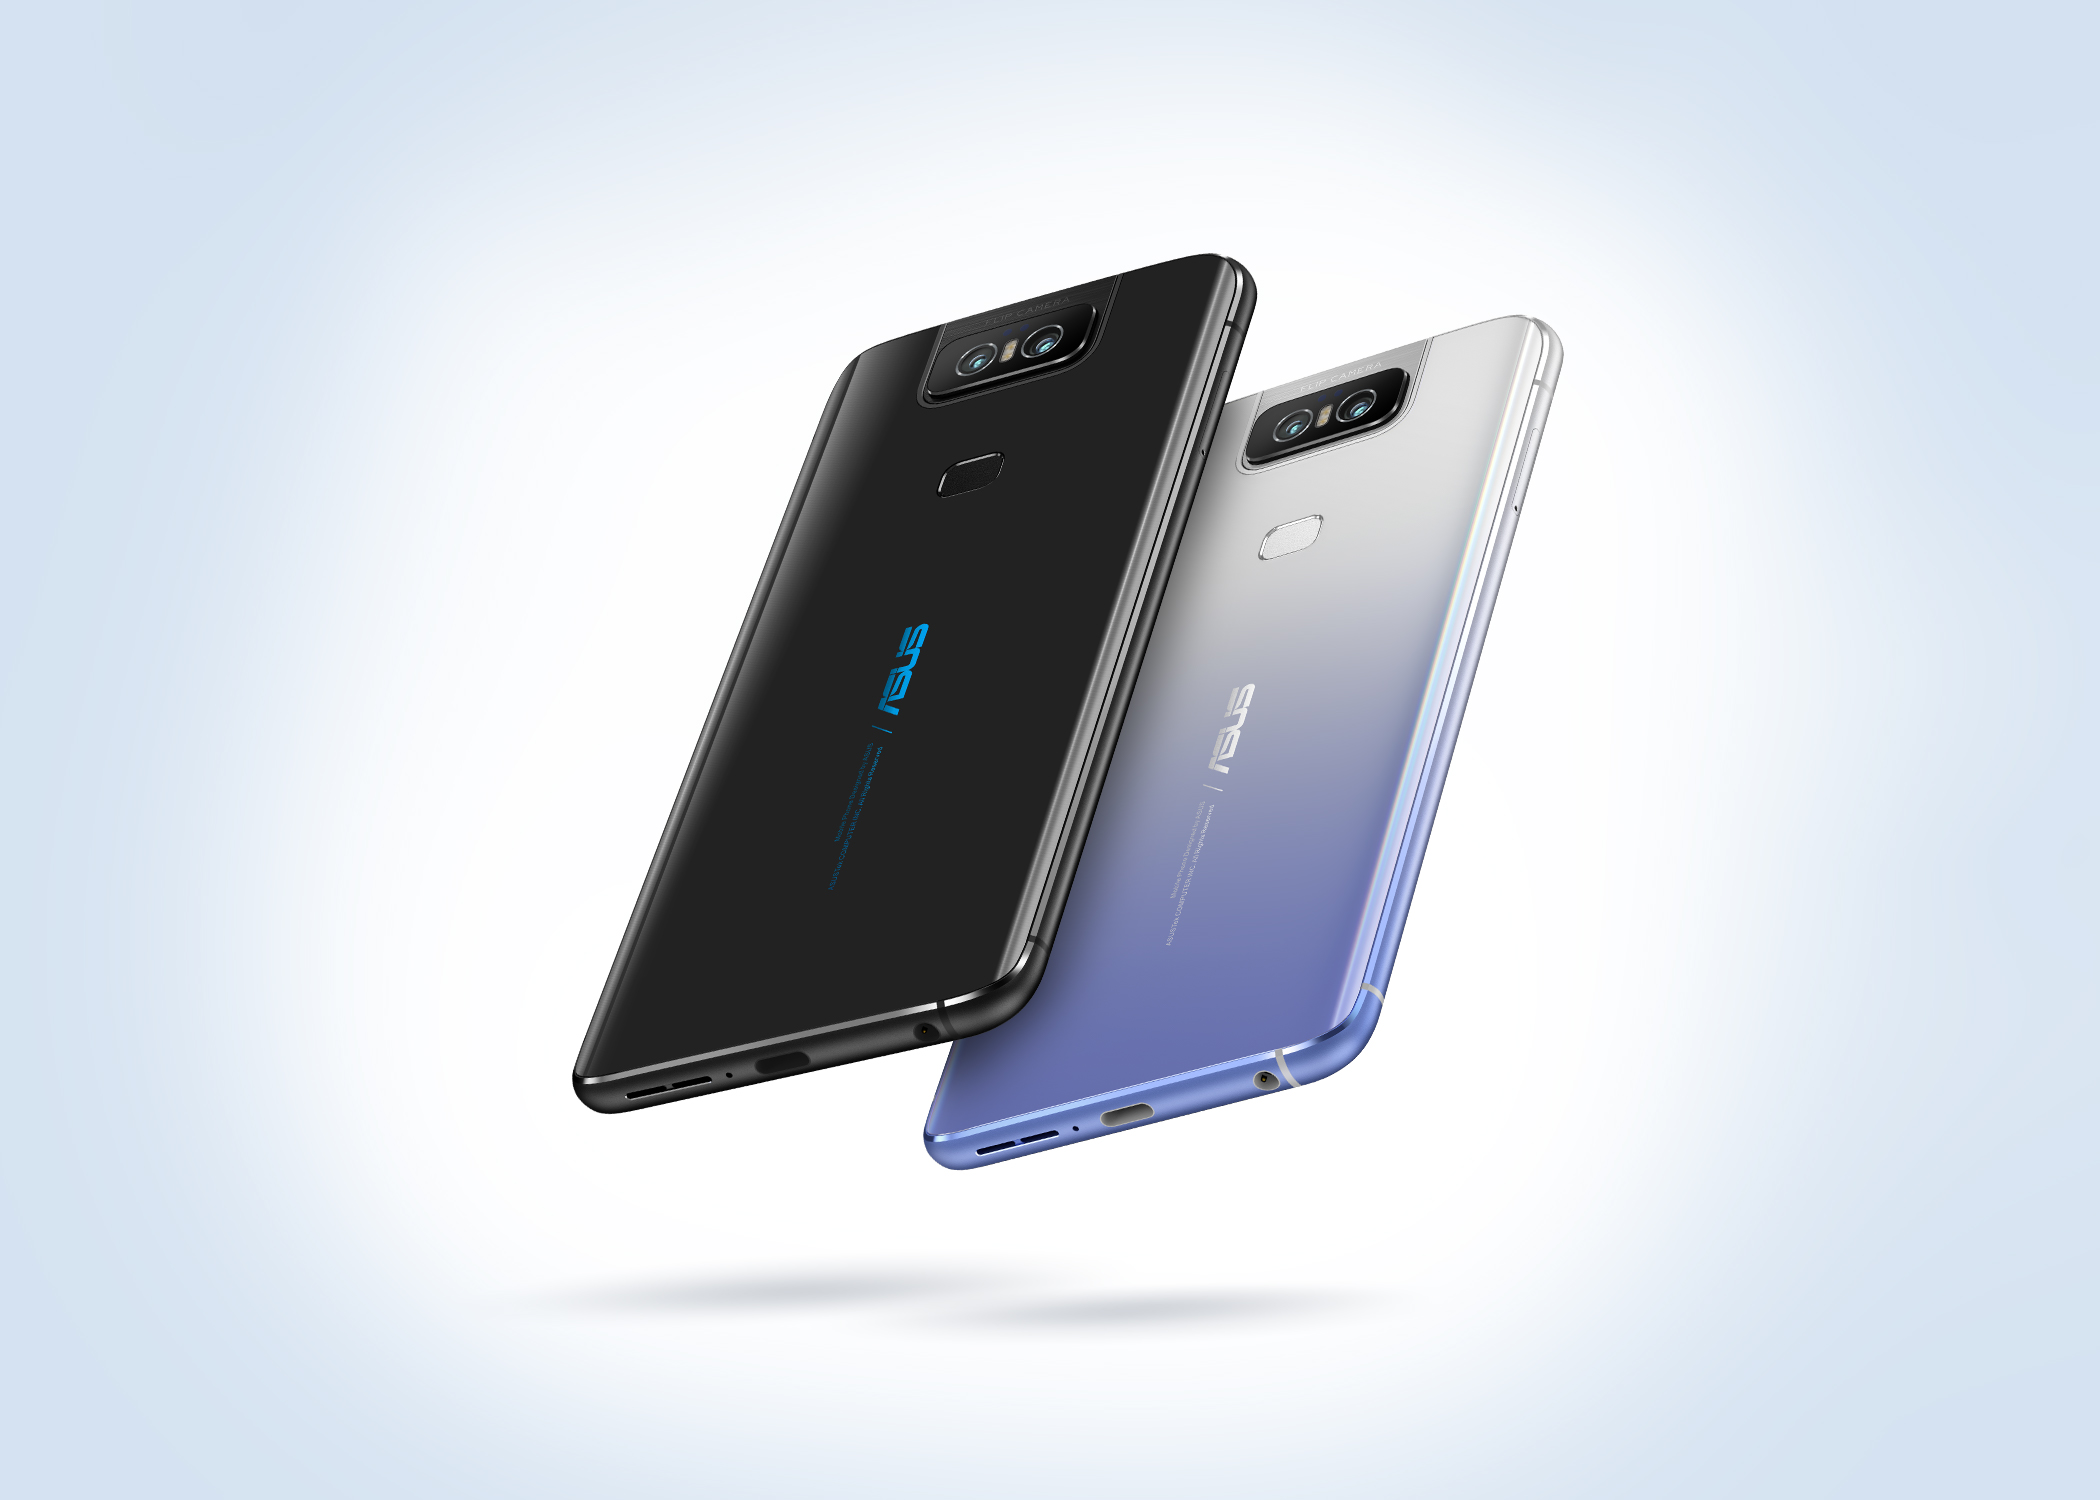 Asus announces ZenFone 6 with flip-up cameras and 5,000mAh